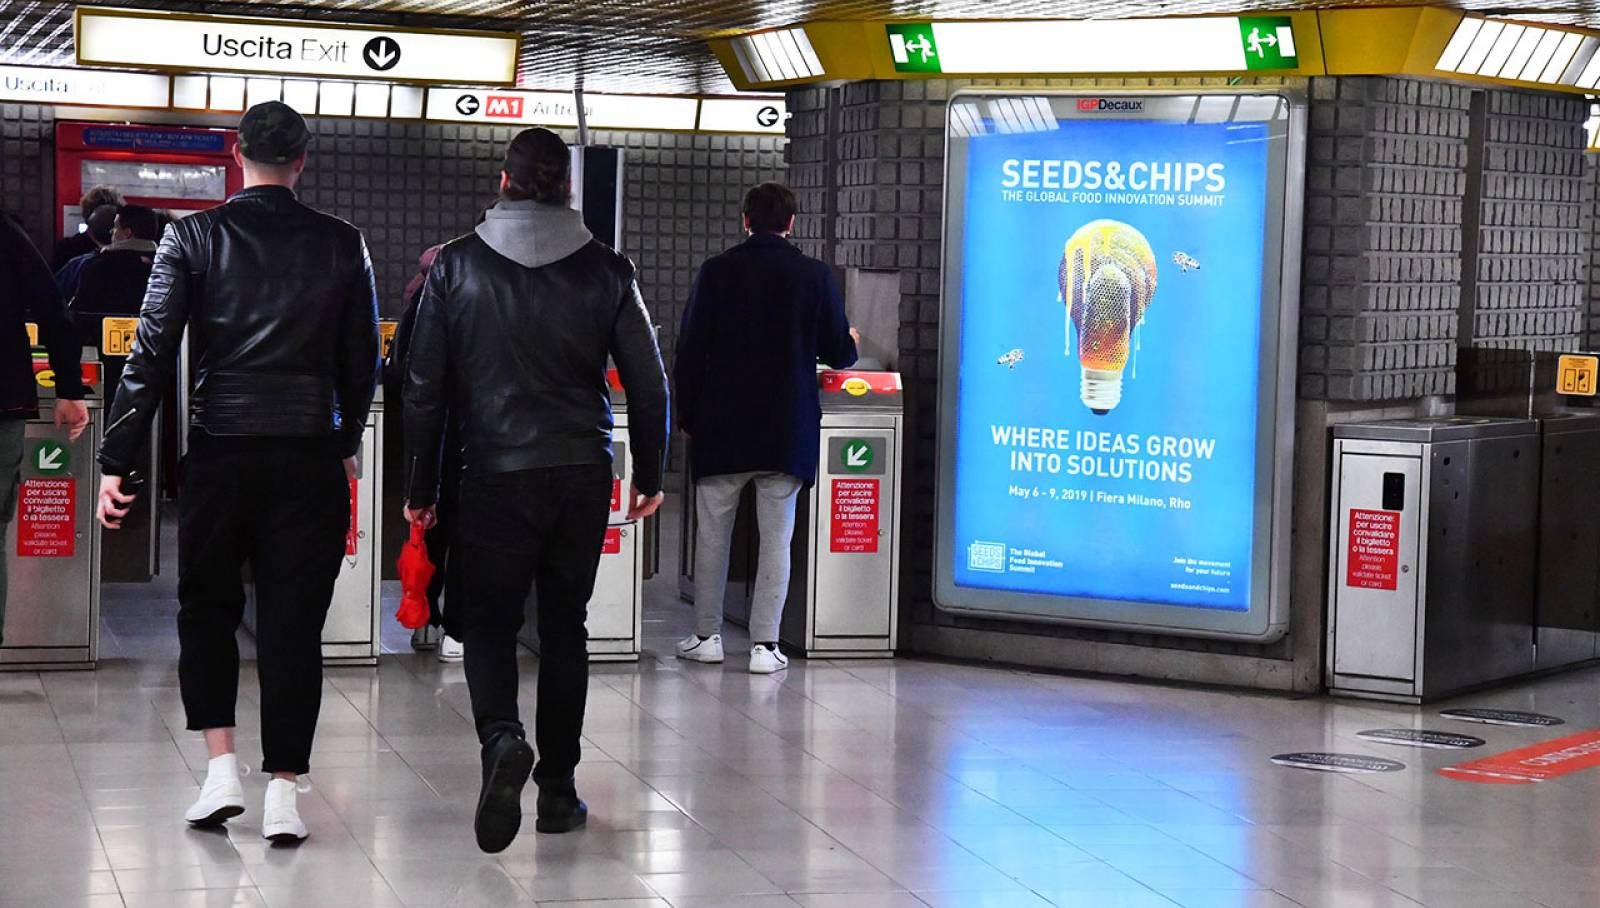 Underground advertising IGPDecaux Milan Portrait Coverage Network for Seeds&Chips